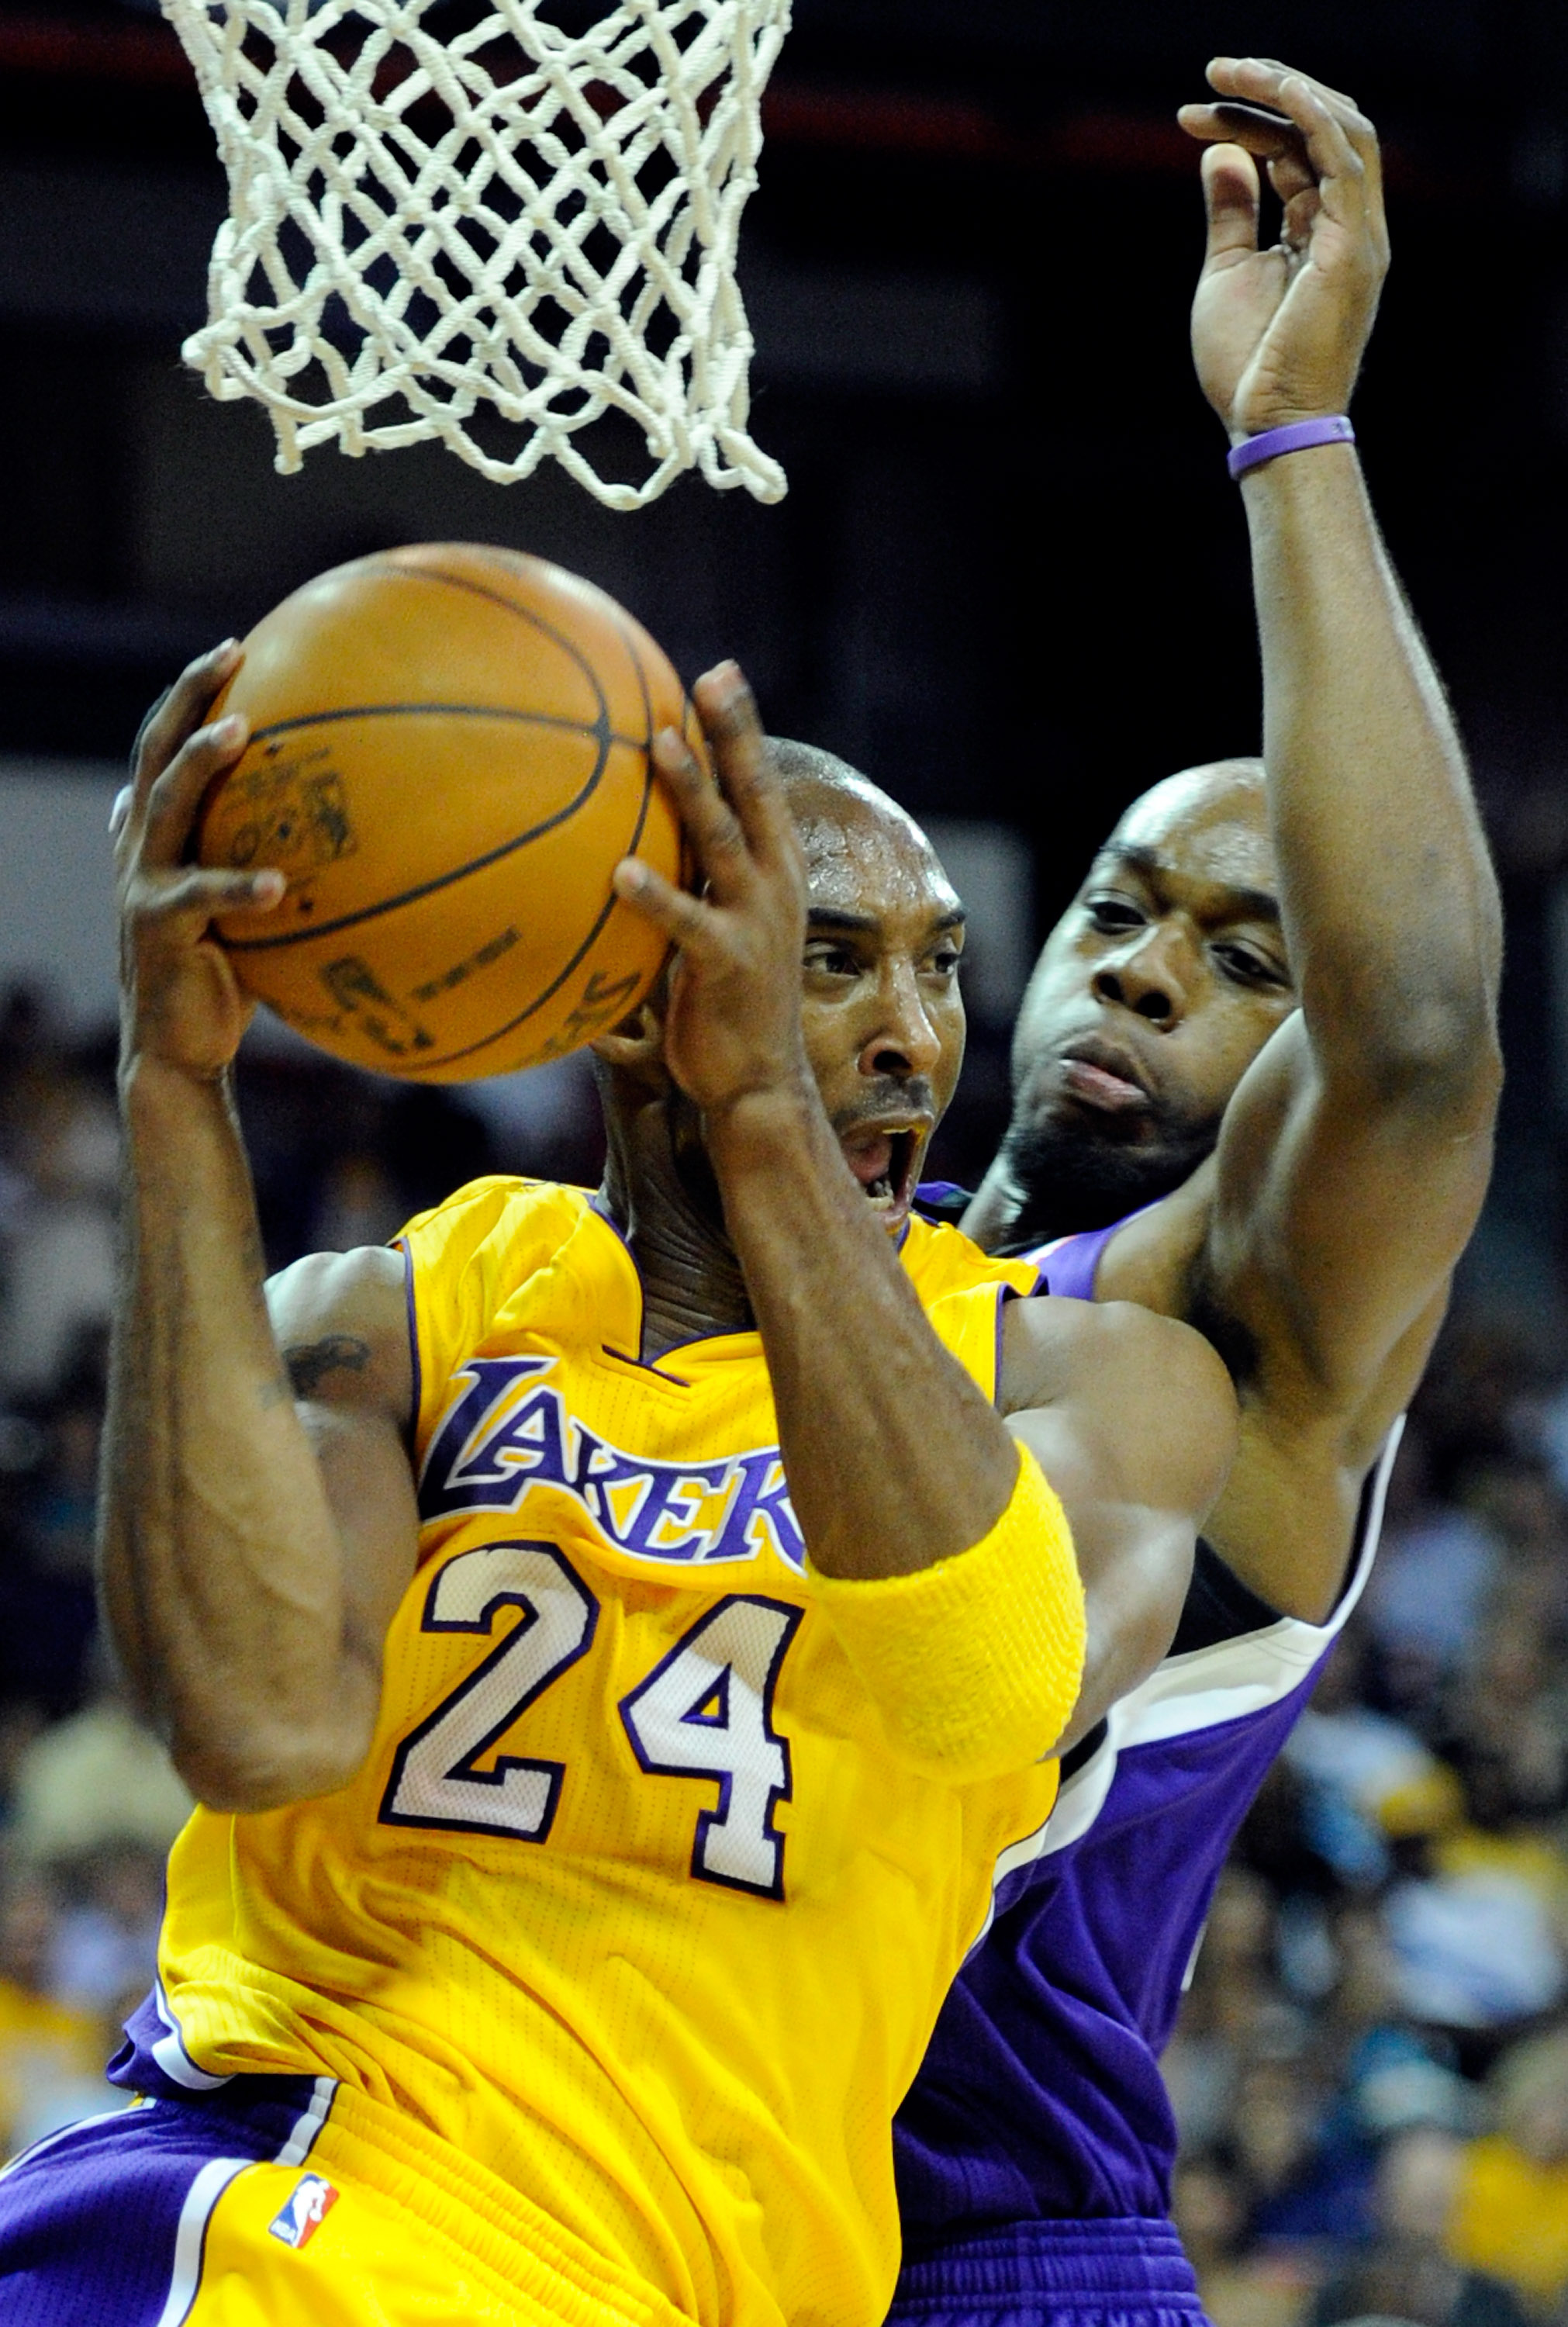 LAS VEGAS - OCTOBER 13:  Kobe Bryant #24 of the Los Angeles Lakers drives against Carl Landry #24 of the Sacramento Kings during their preseason game at the Thomas & Mack Center October 13, 2010 in Las Vegas, Nevada. The Lakers won 98-95. NOTE TO USER: Us